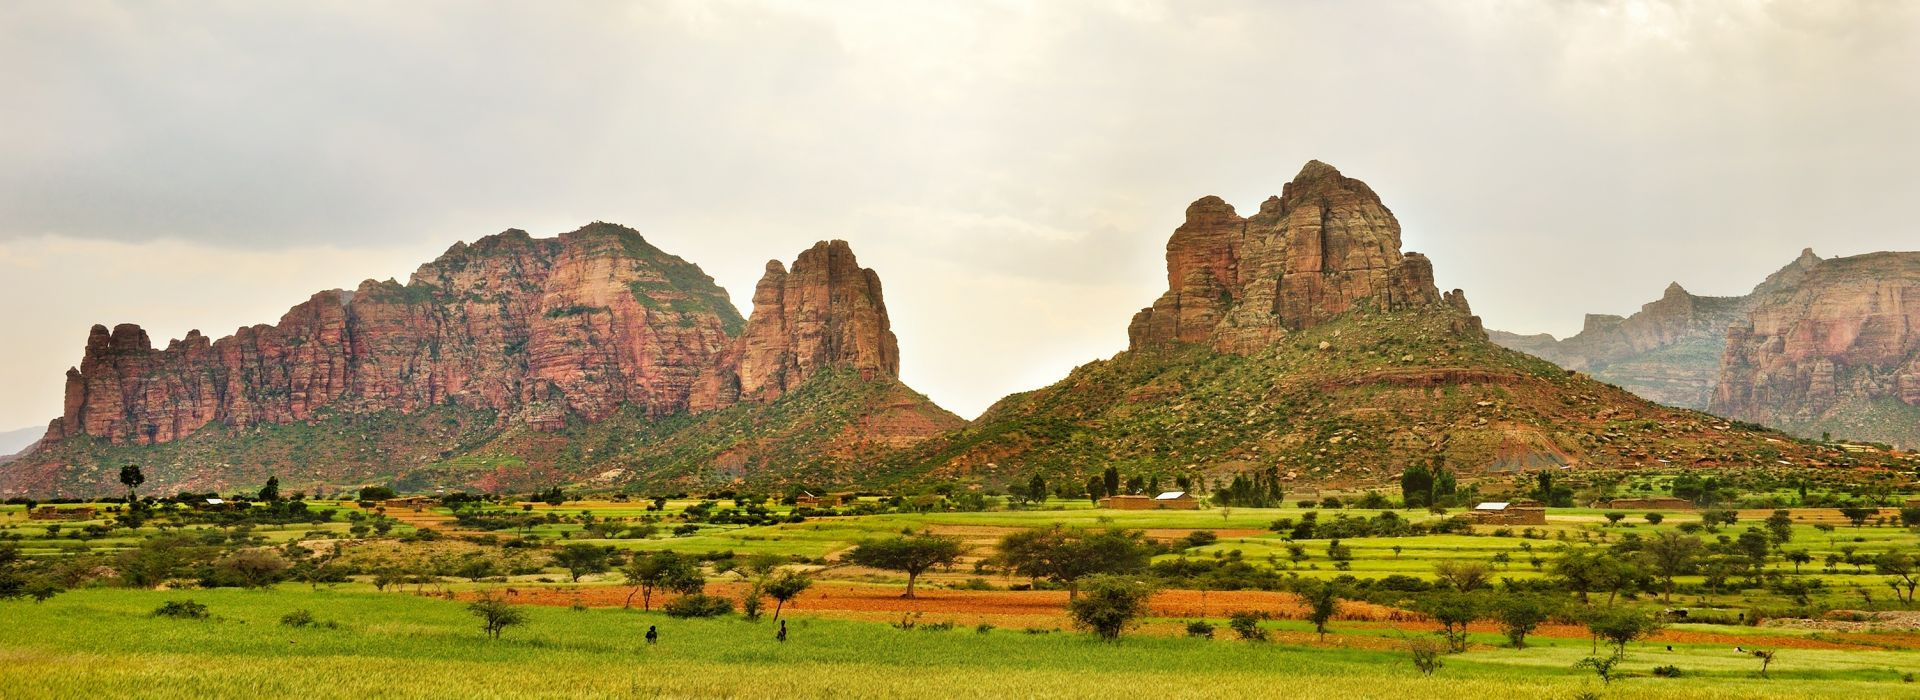 Travelling Ethiopia - Tours and Trips in Ethiopia